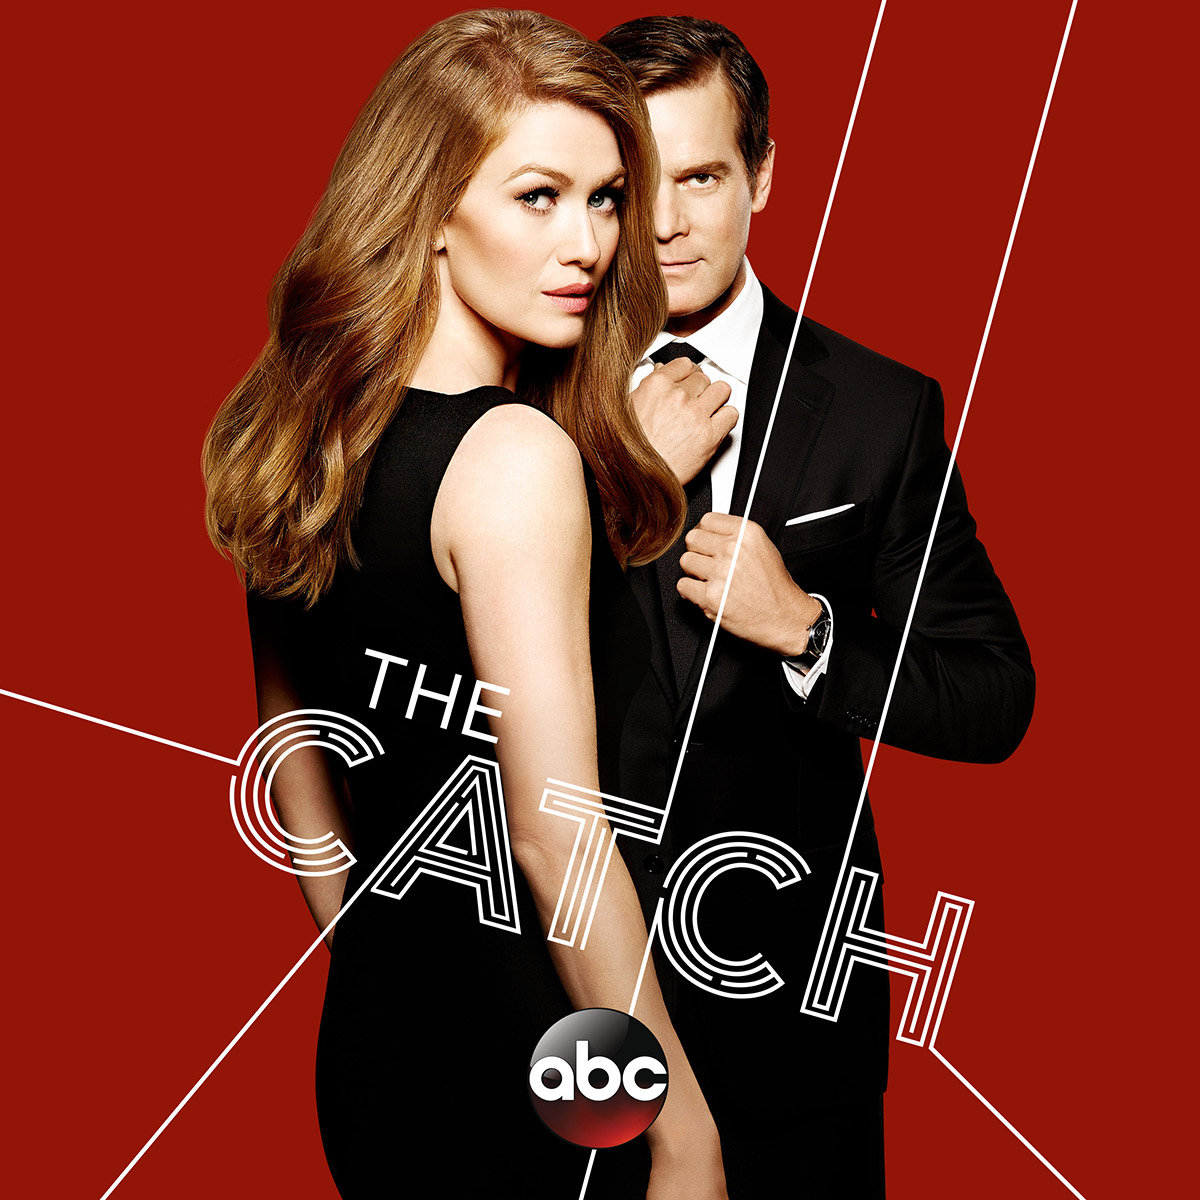 The Catch on ABC